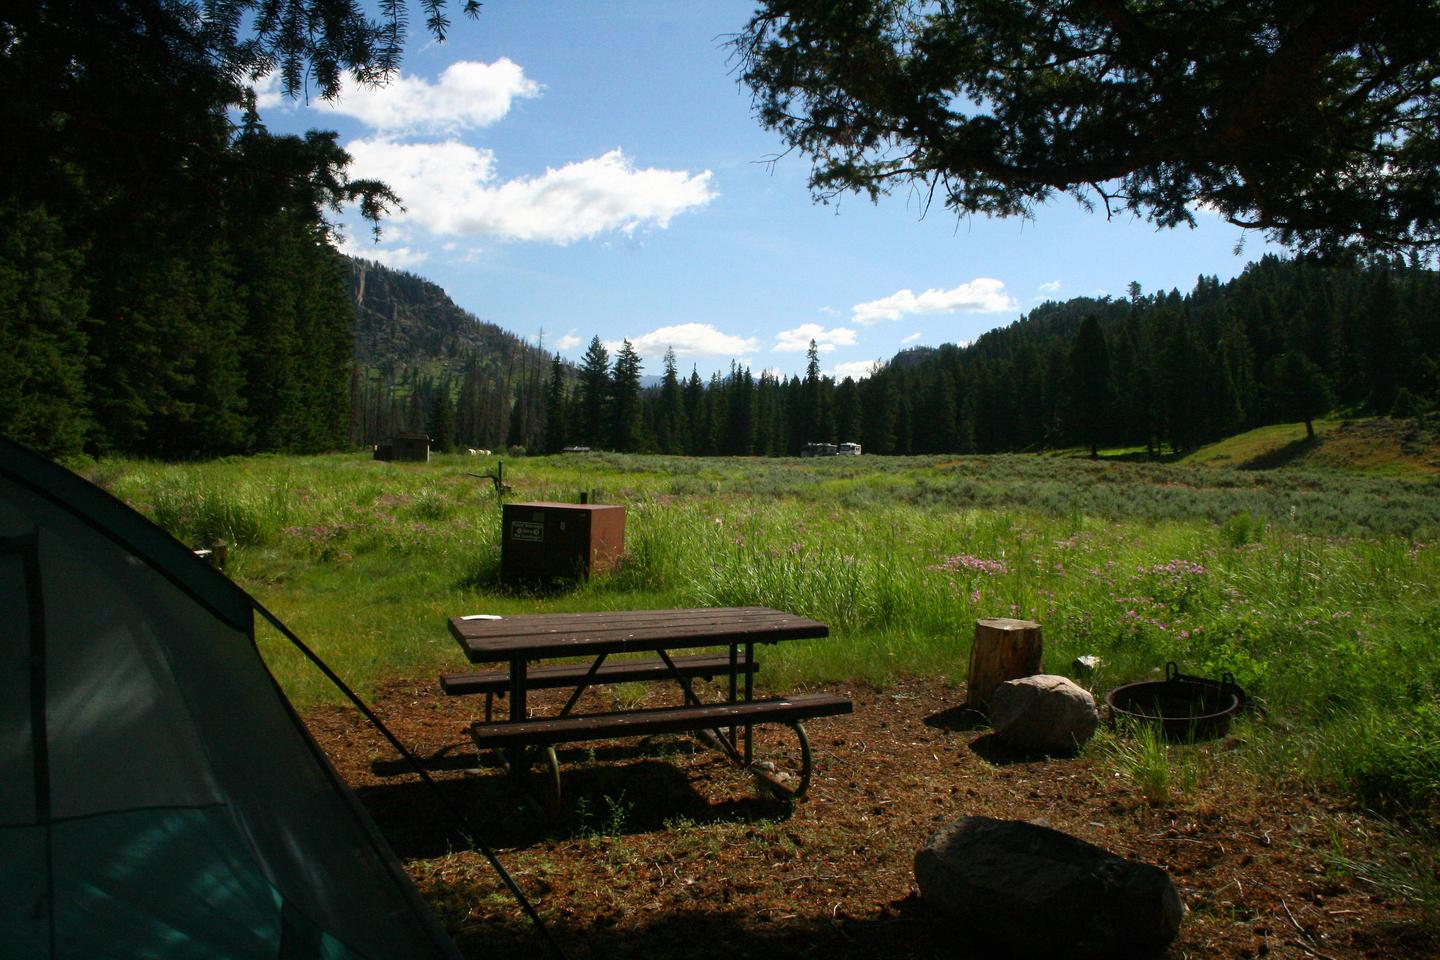 Slough Creek Campground Site #8....Slough Creek Campground Site #8